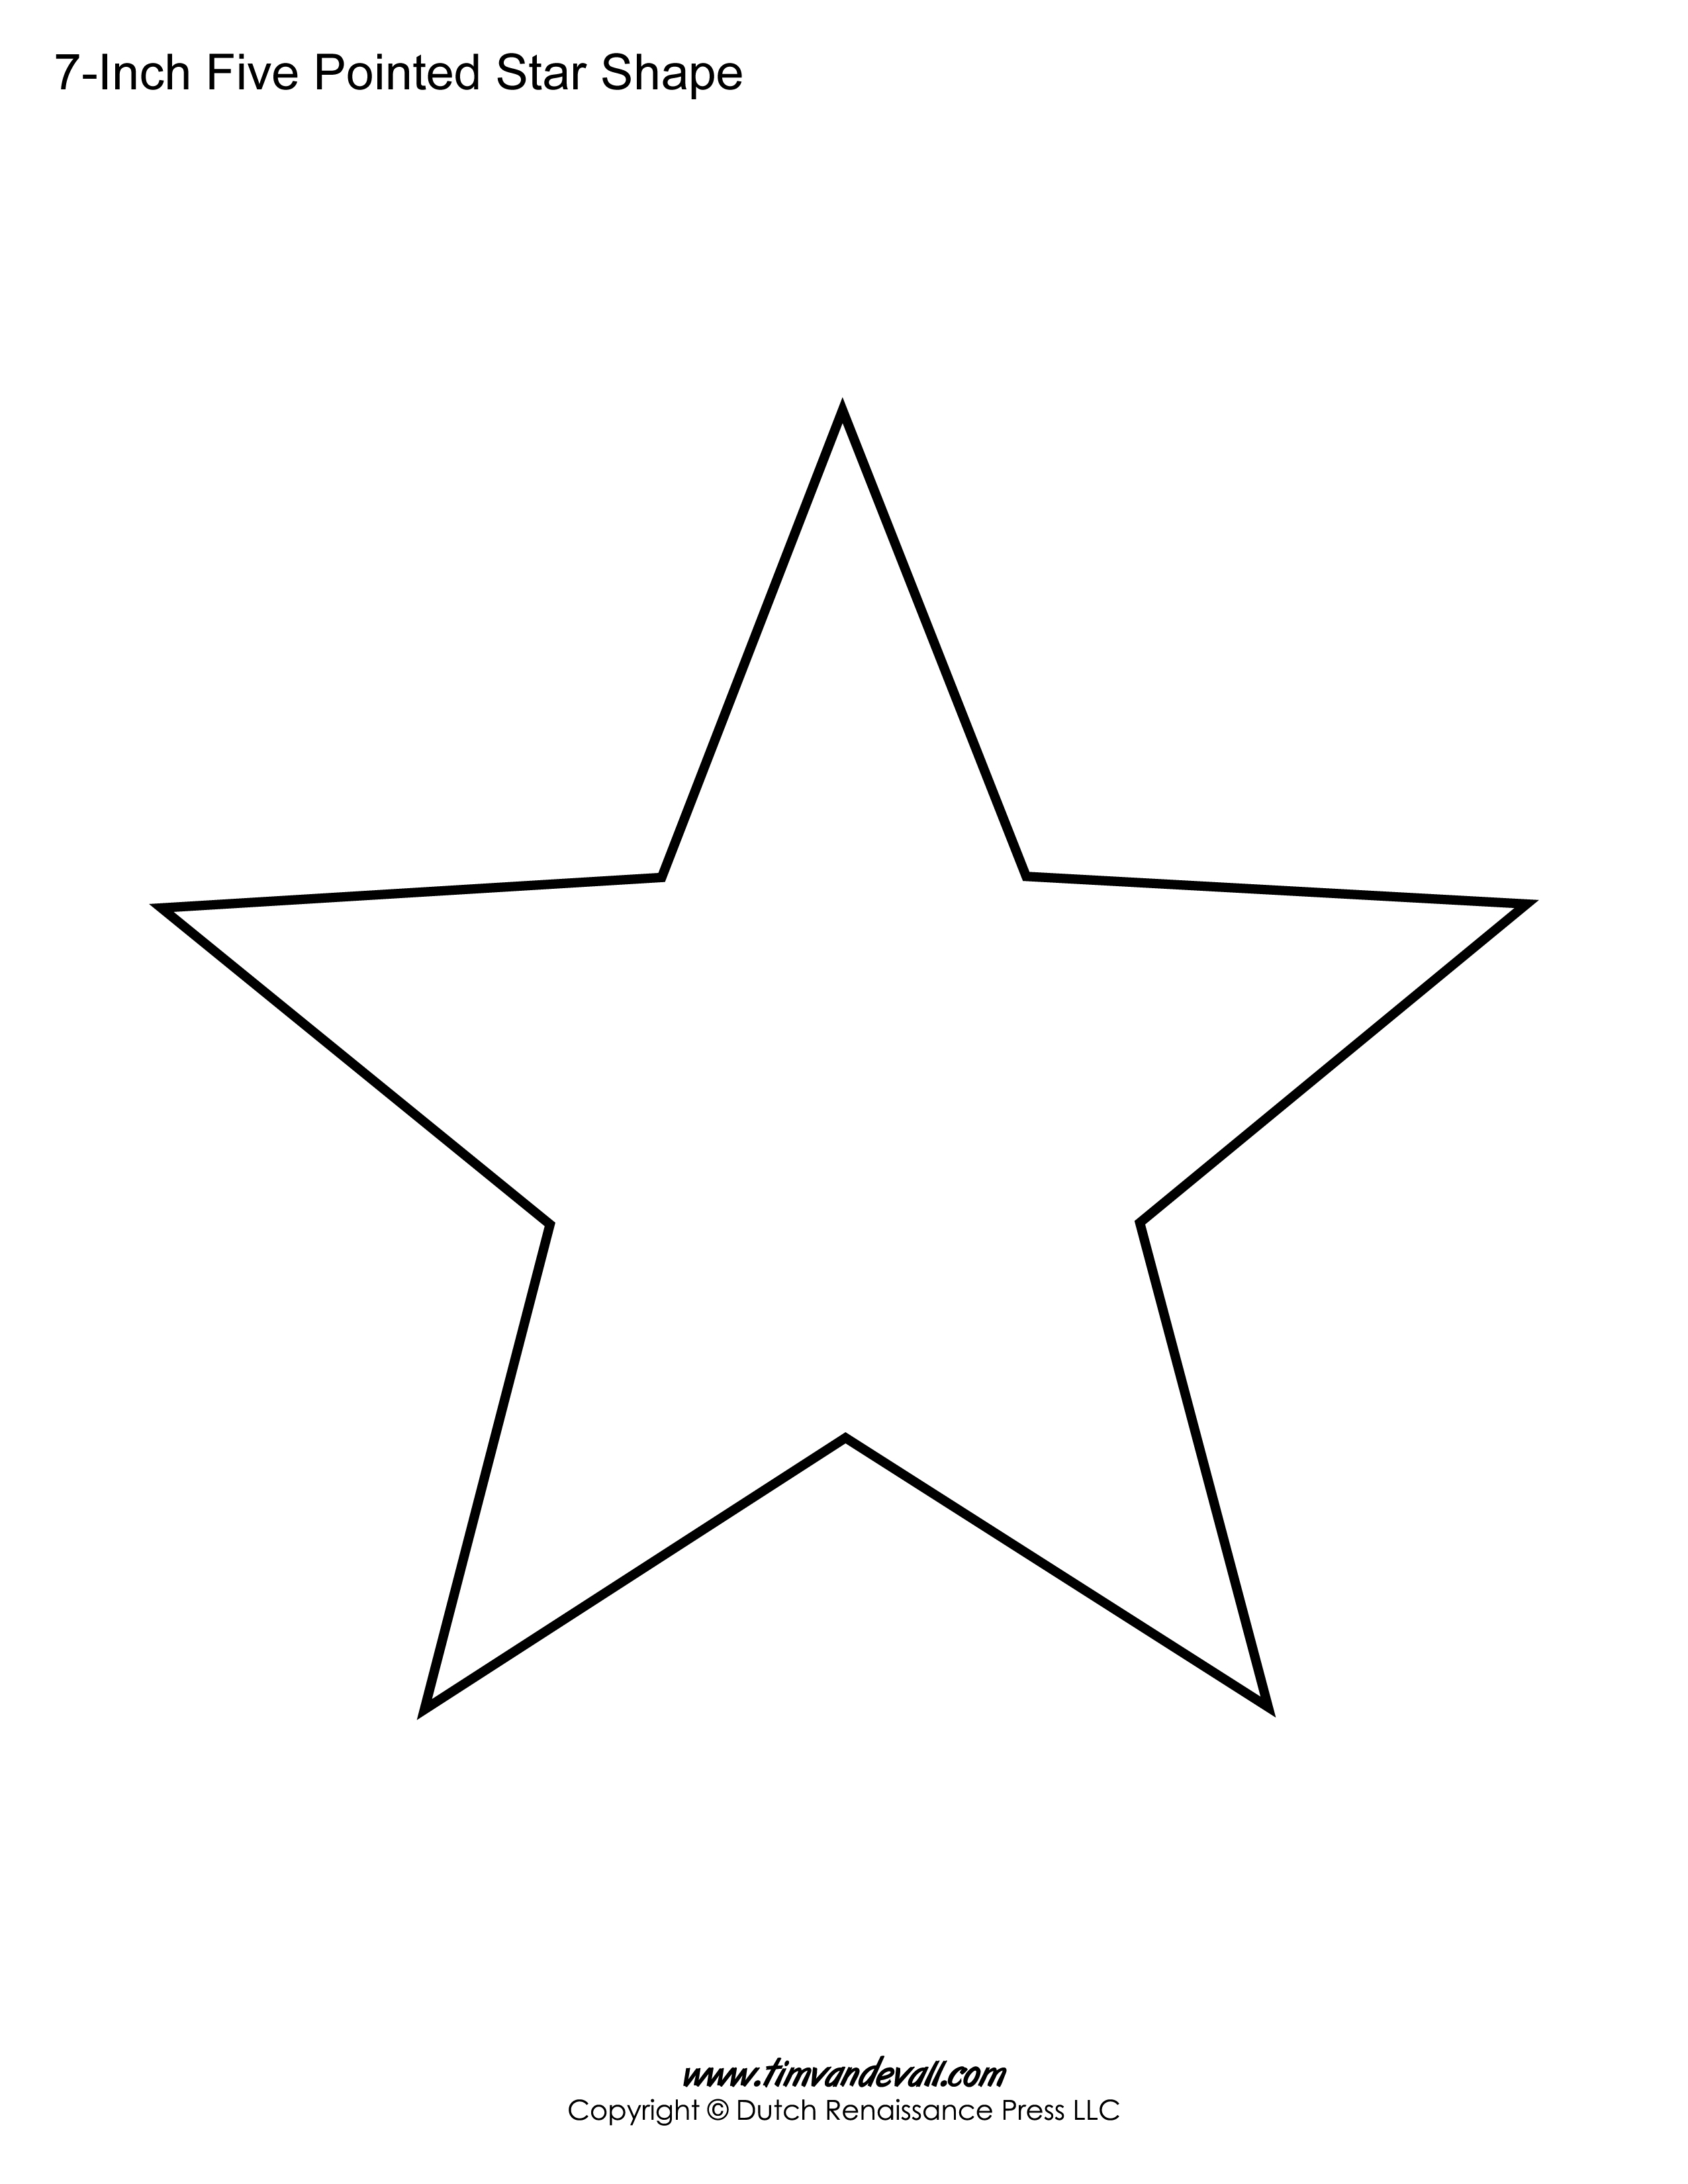 Printable Five Pointed Star Templates Blank Shape Pdfs